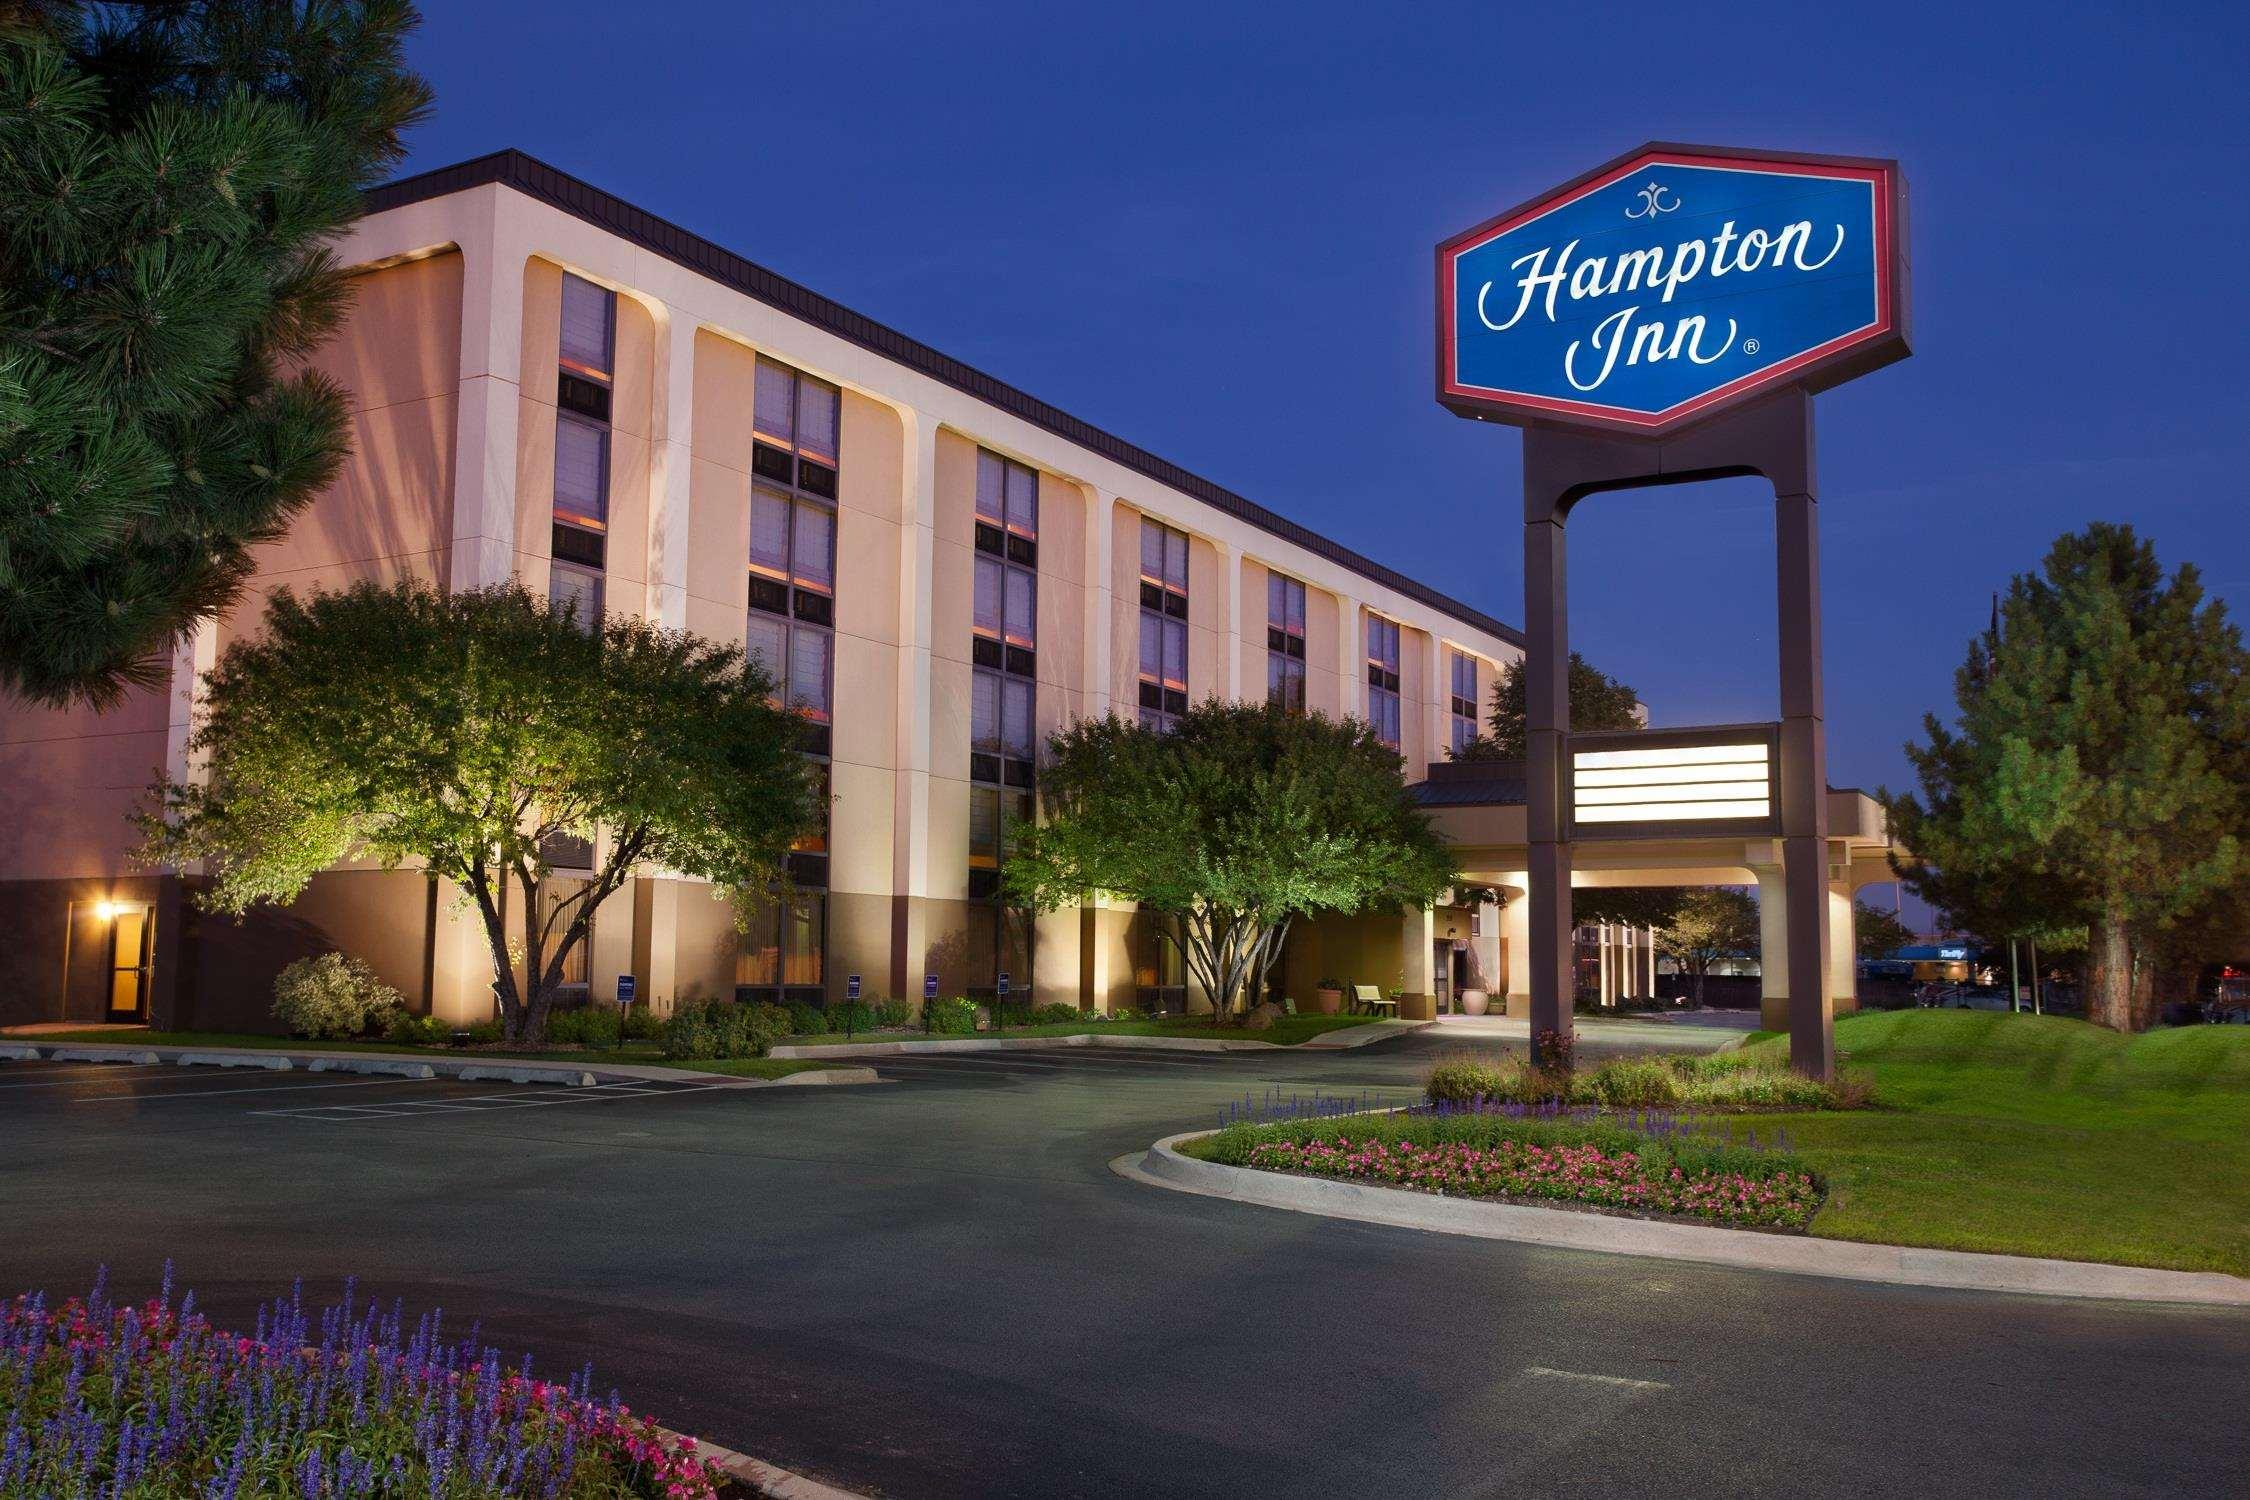 Hampton Inn Chicago - O'Hare